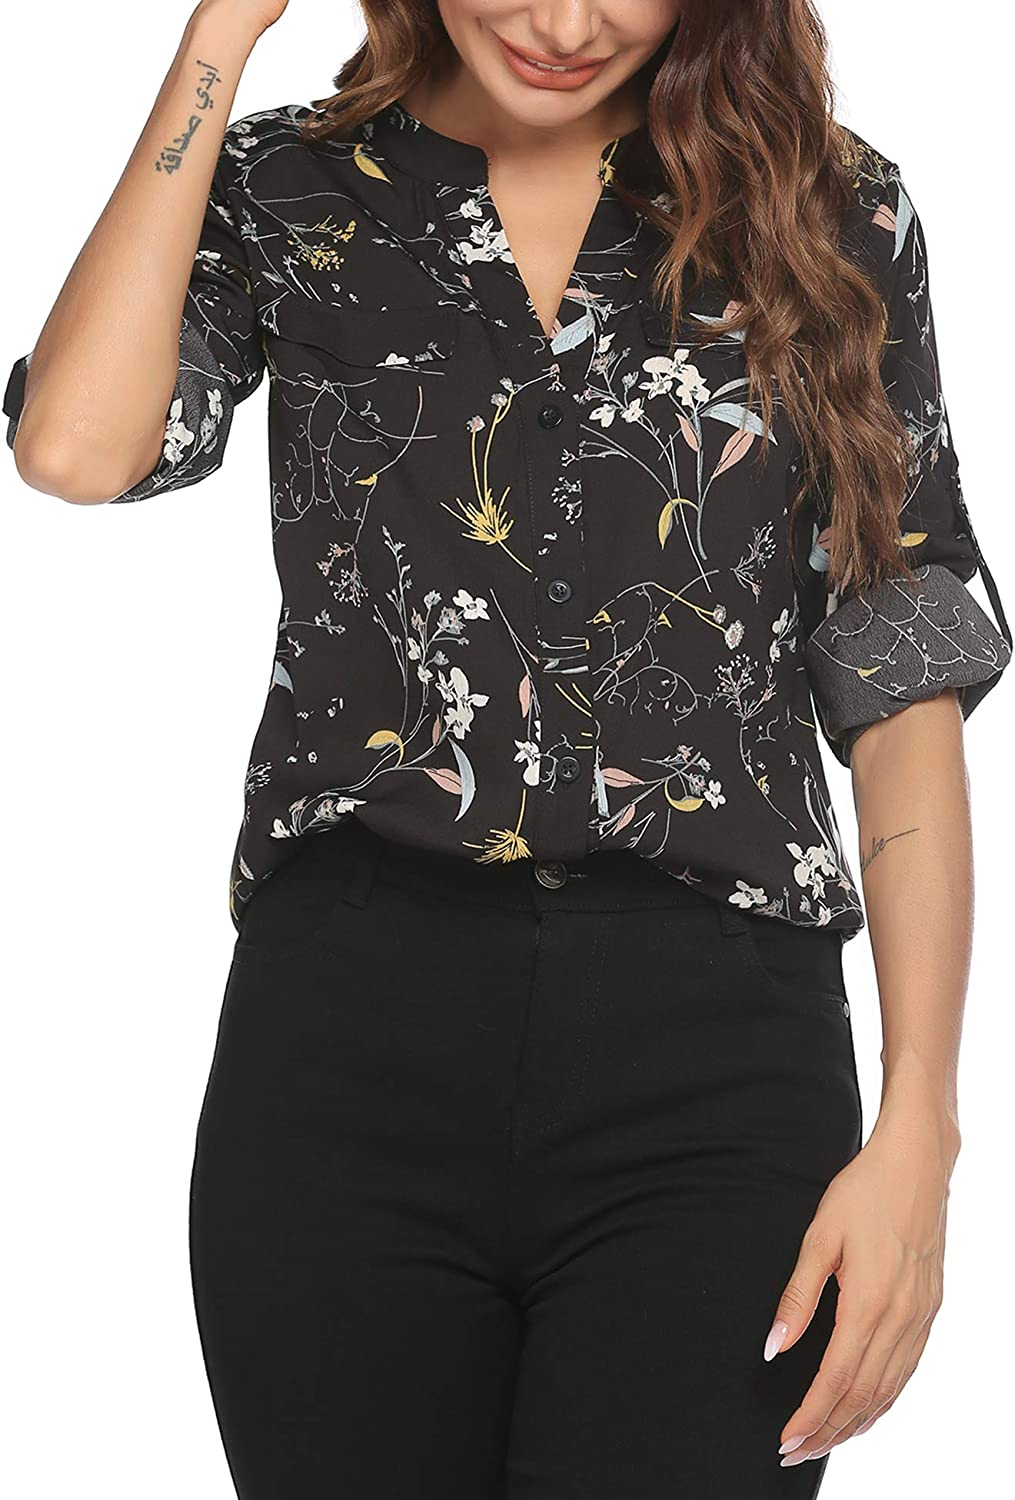 SoTeer Women Button Down Chiffon Shirts Floral Printed Henley V Neck Blouses Long Sleeve Tunic Tops